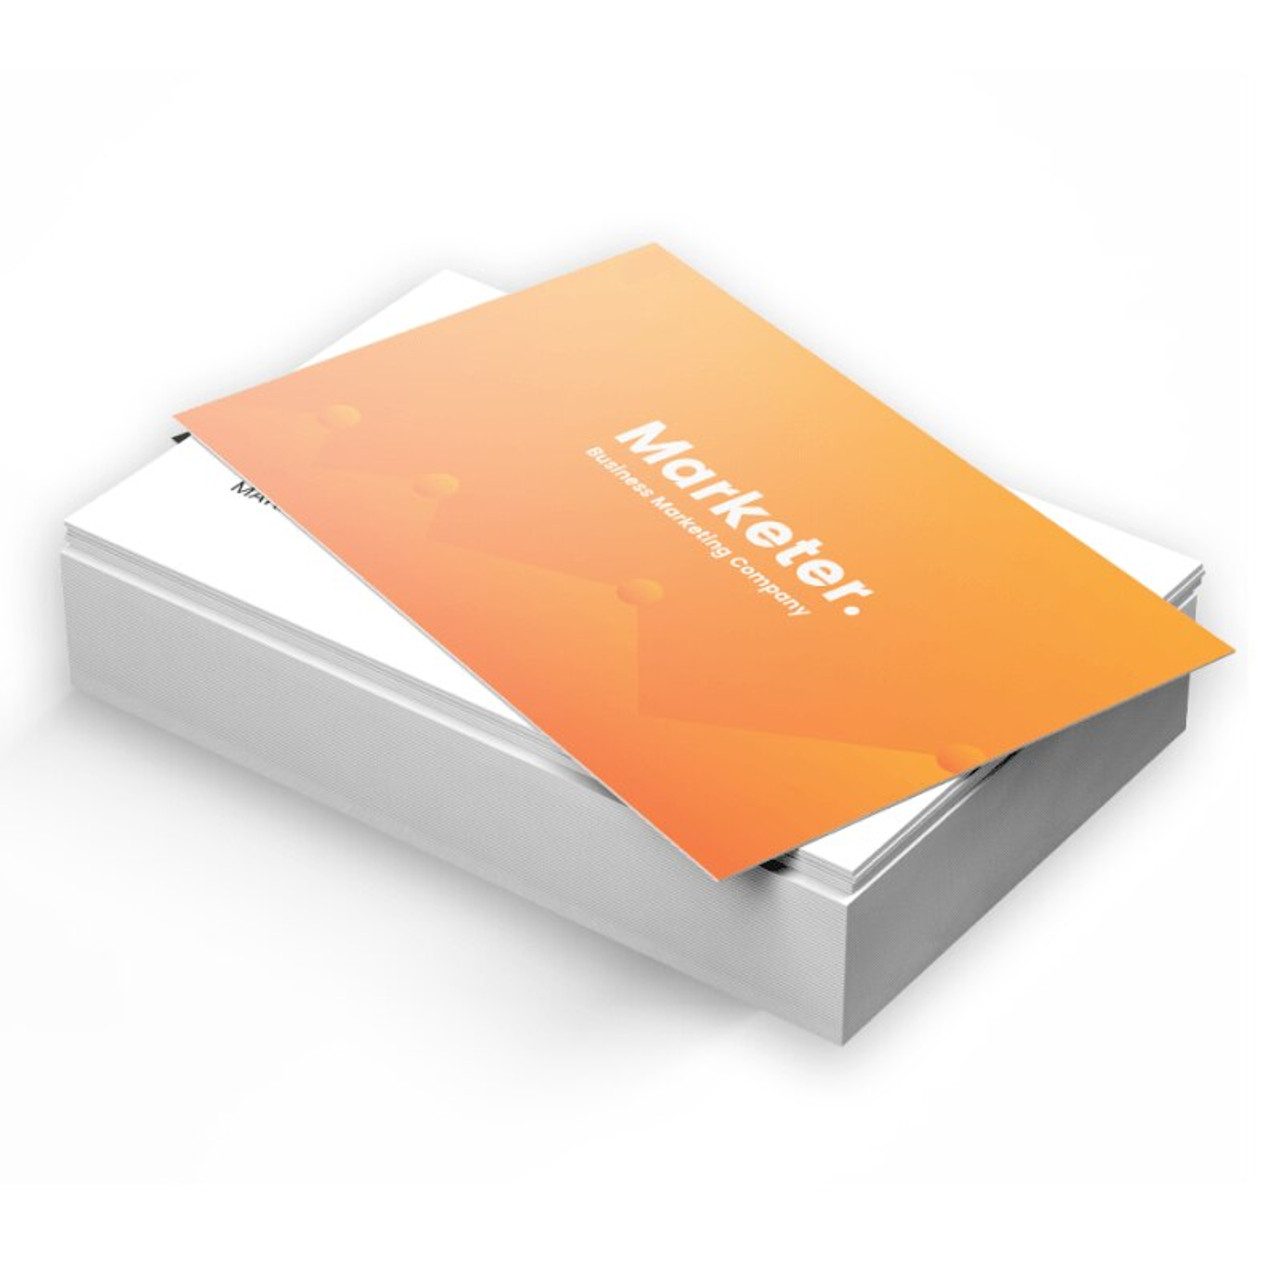 Make a great first impression with business cards. Our 16pt matte finish business cards offer a smooth, elegant look.